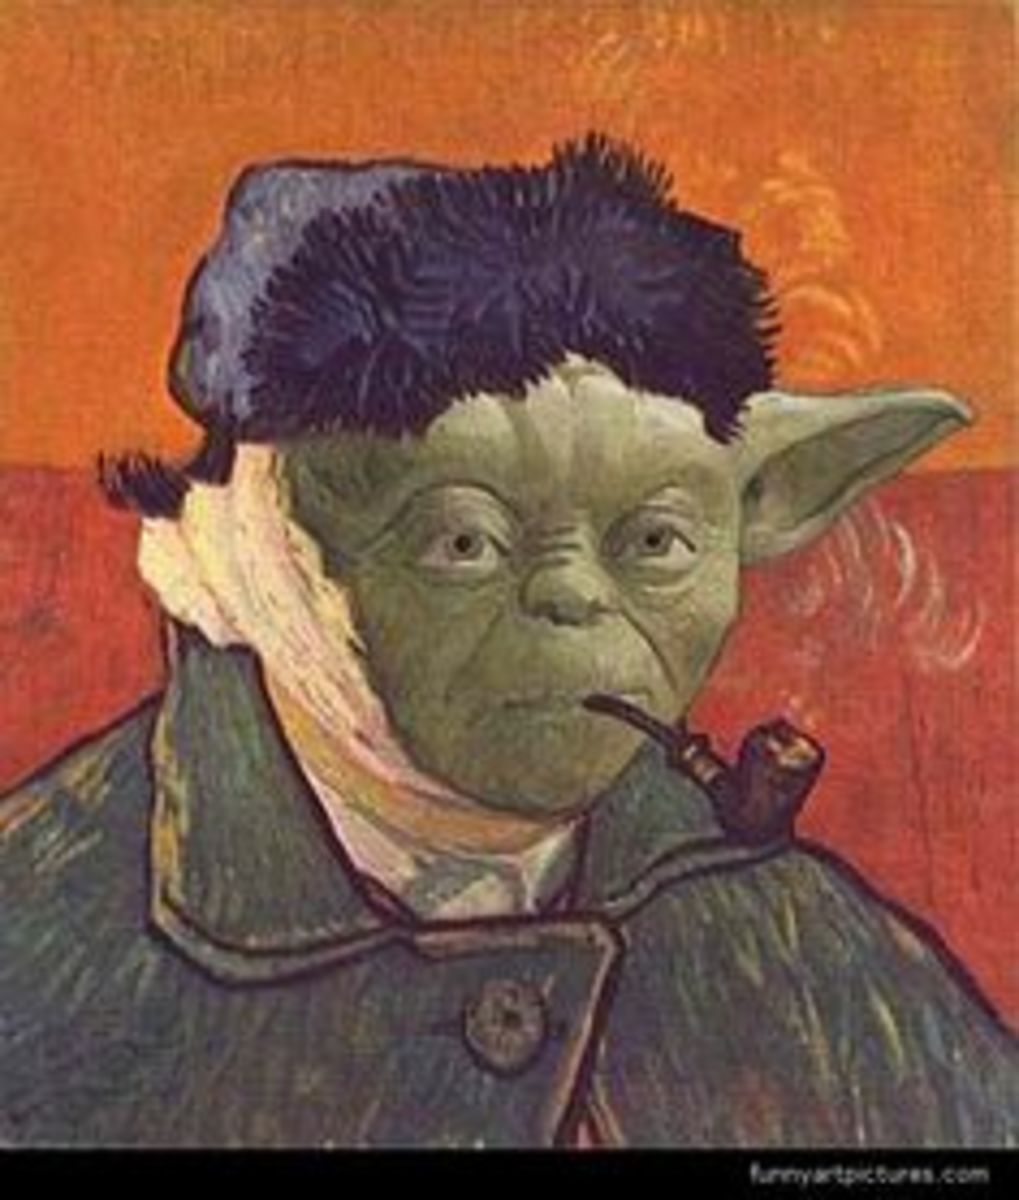 7-of-the-most-famous-and-recognizable-portraits-in-art-history-still-relevant-to-pop-culture-today